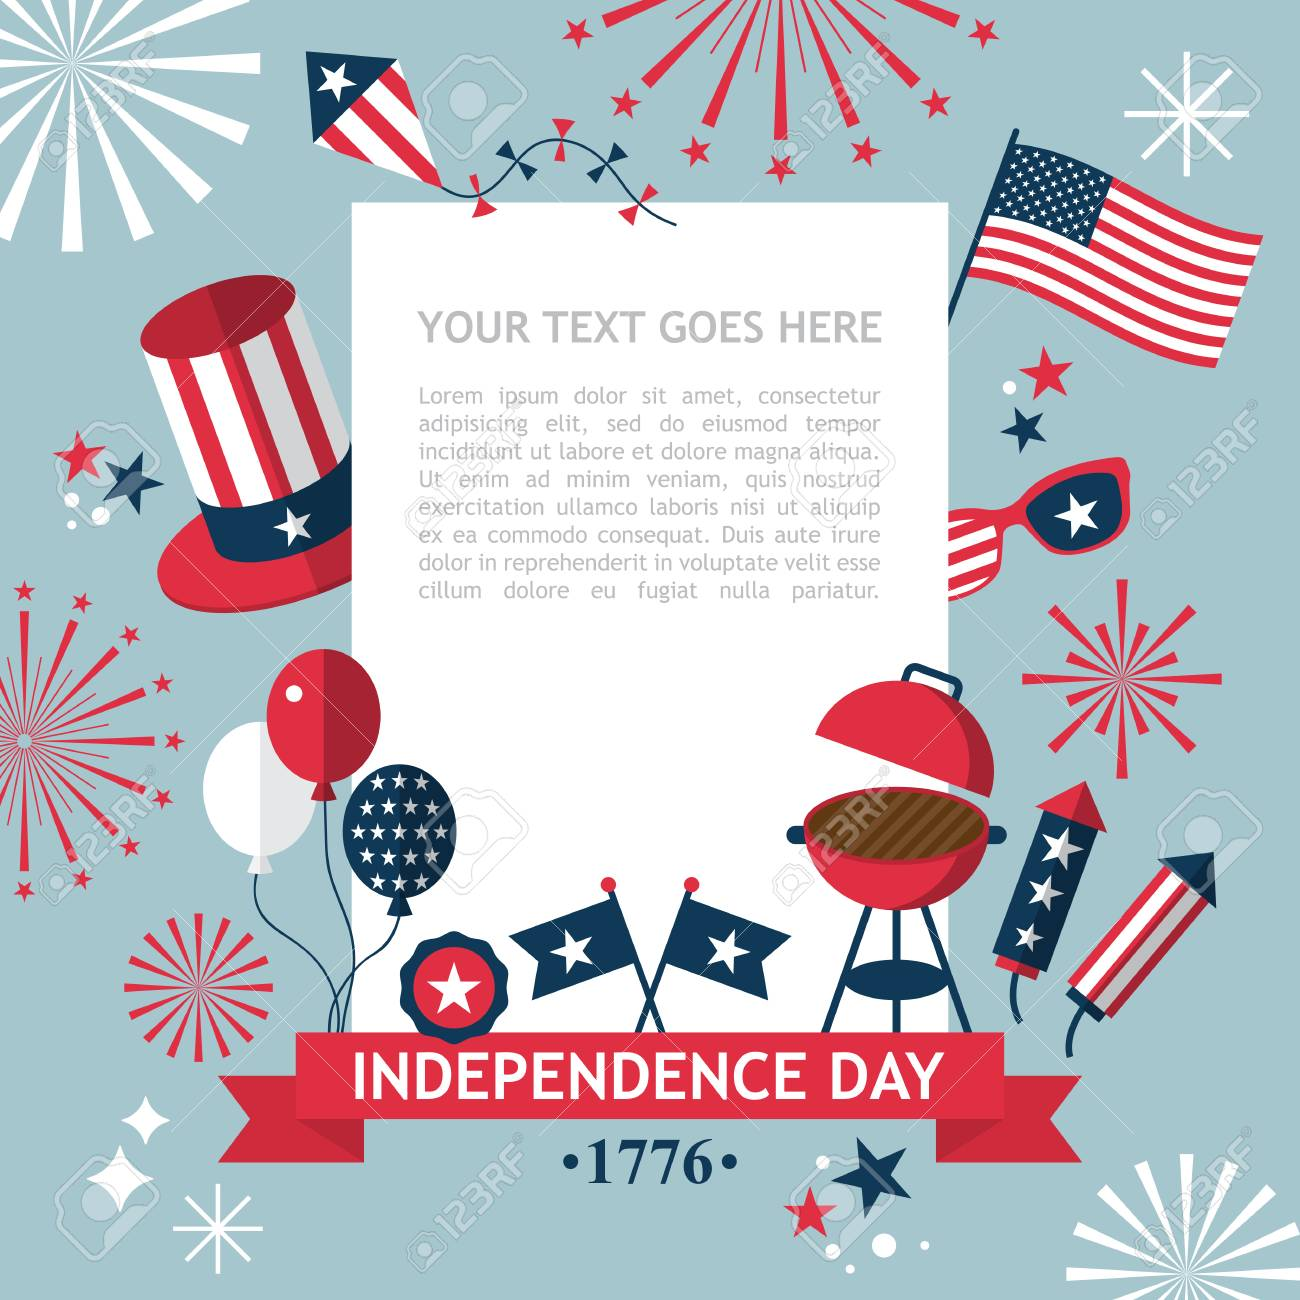 4th of july independence day of the usa party invitation template 4th of july independence day of the usa party invitation template stock vector stopboris Gallery